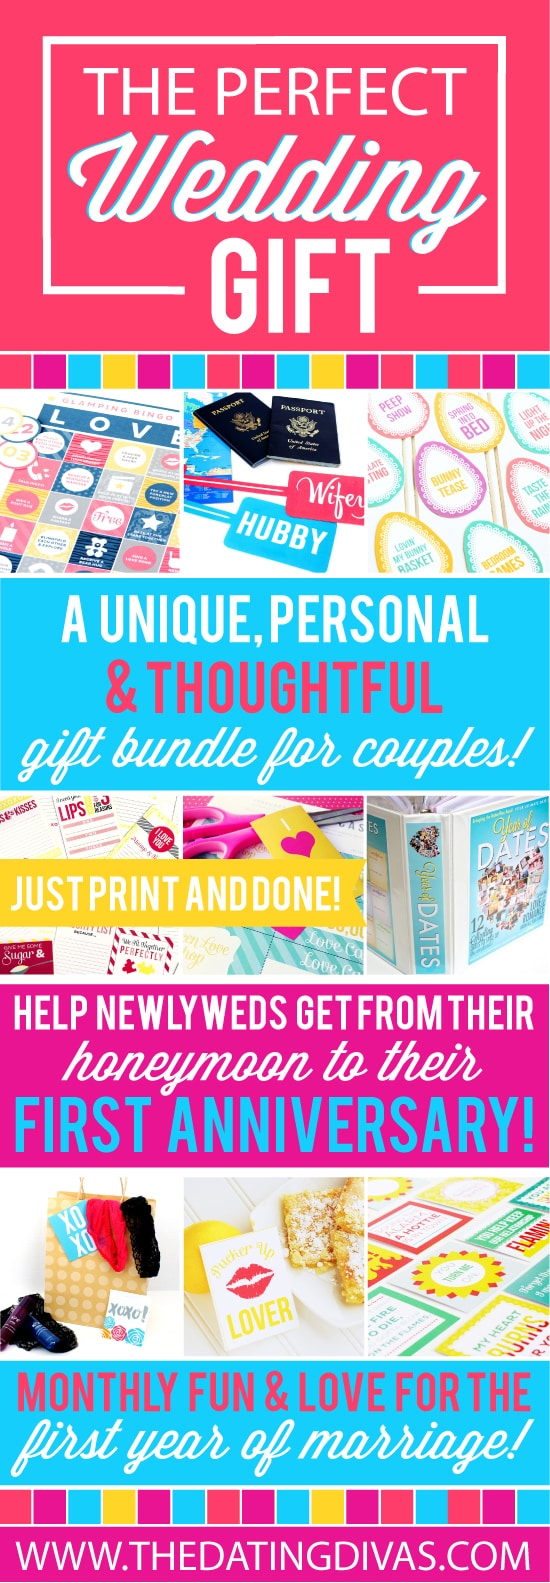 Best Wedding Gift List 2015 : The Perfect 2015 Wedding Gift PushUP24